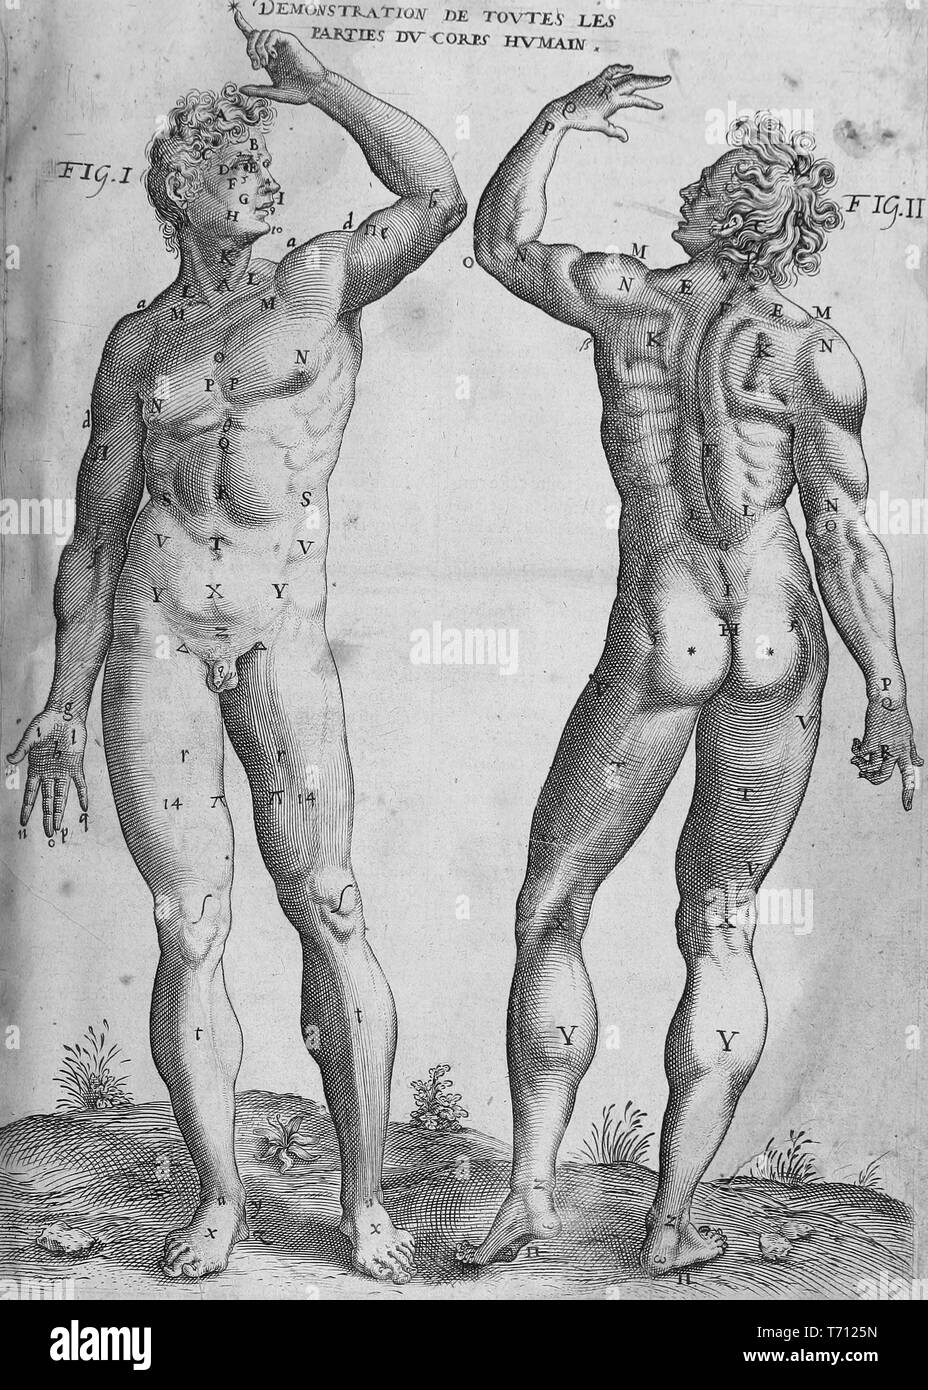 Engraving of two male figures, with numbered parts of the body, from the book 'Les oewres de chirurgie de Iacques Guillemeau, chirurgien ordinaire du Roy et Iure a Paris', 1825. Courtesy Internet Archive. () - Stock Image